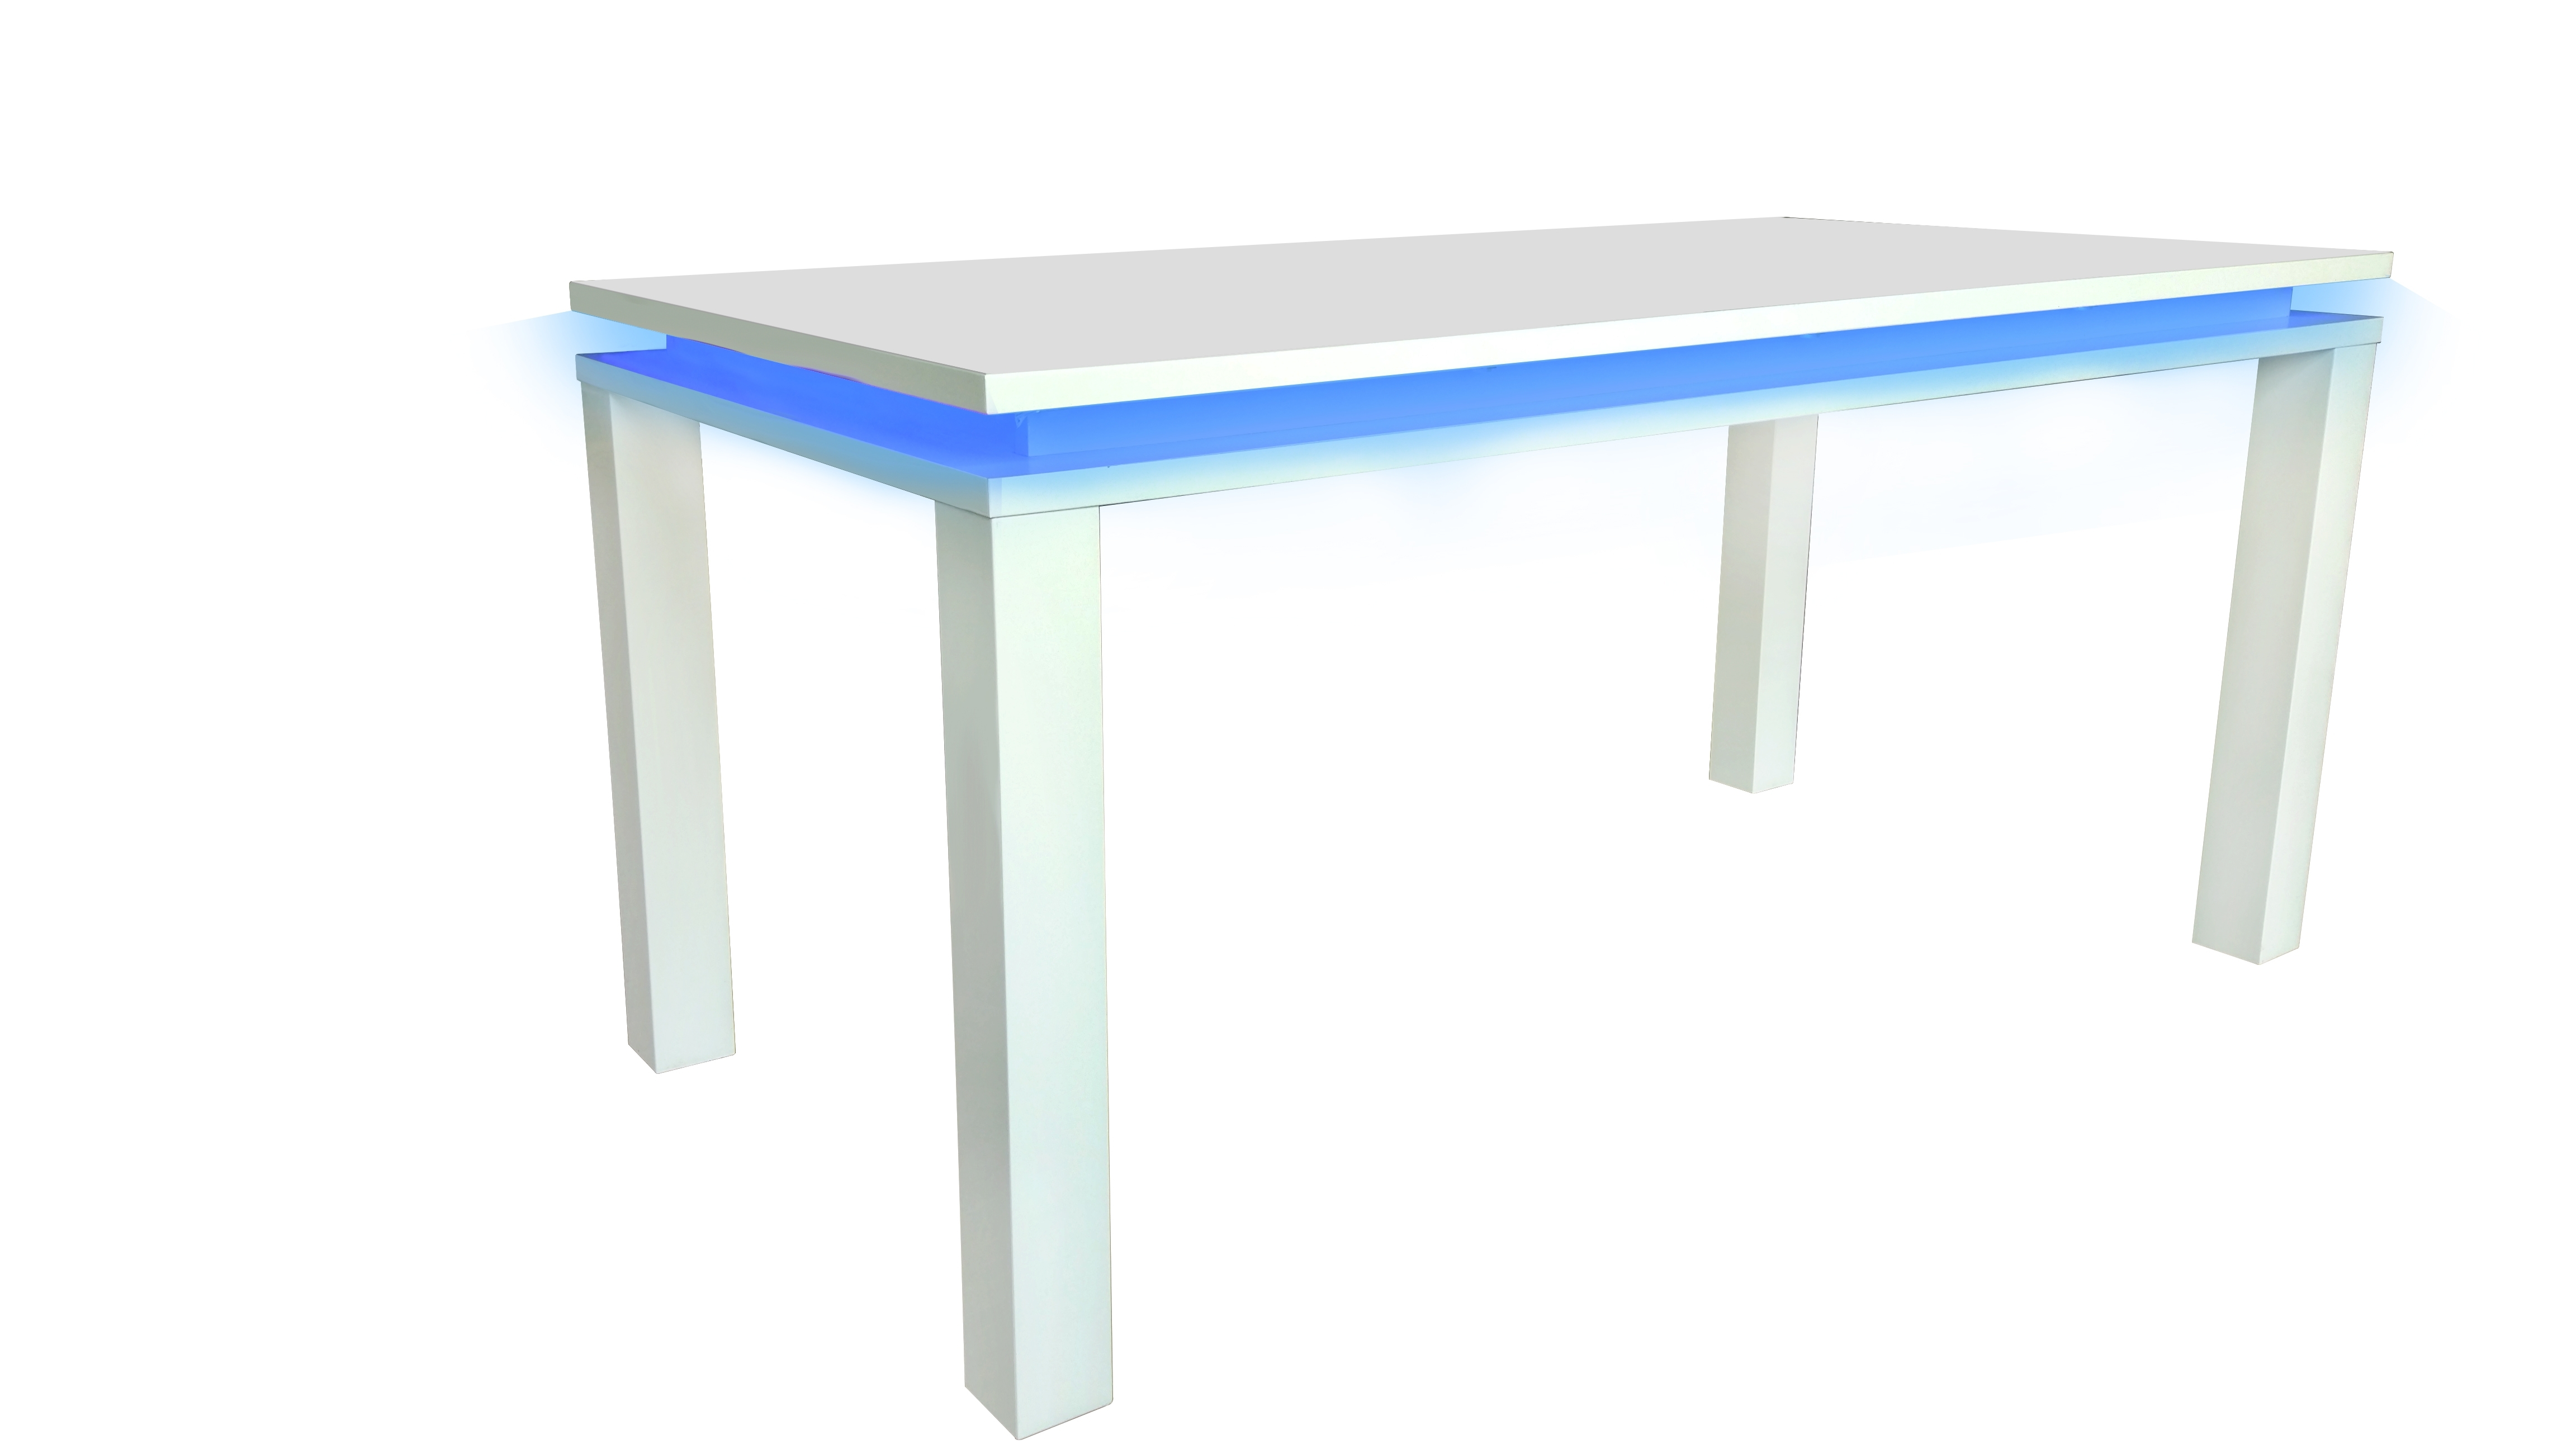 Trendy White Gloss Dining Room Furniture Intended For Details About Milano High Gloss Modern Dining Room Table – White Gloss With  Blue Led Lighting (View 14 of 25)